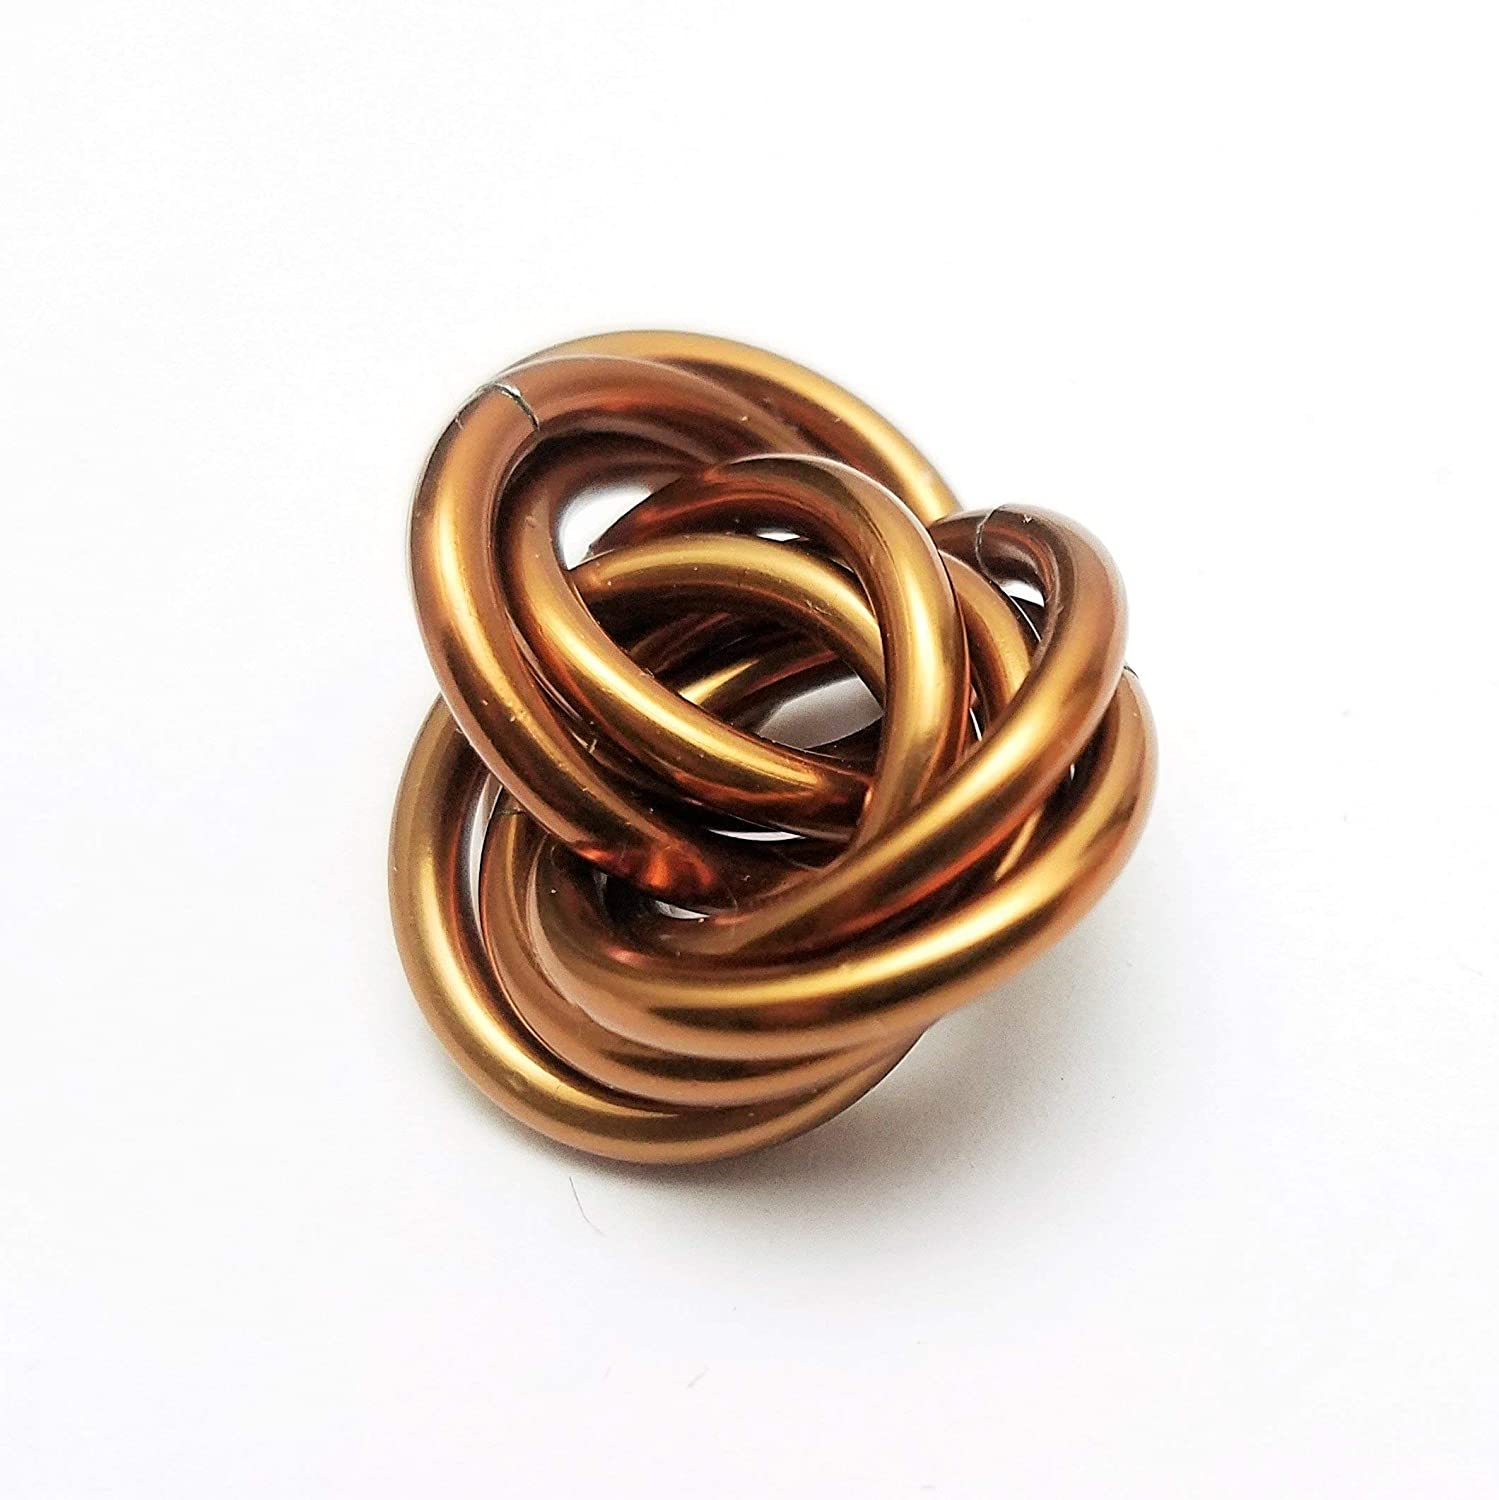 Half M/öbii Caramel Office Toy Small Mobius Hand Fidget Toy Shiny Stress Rings for Restless Hands